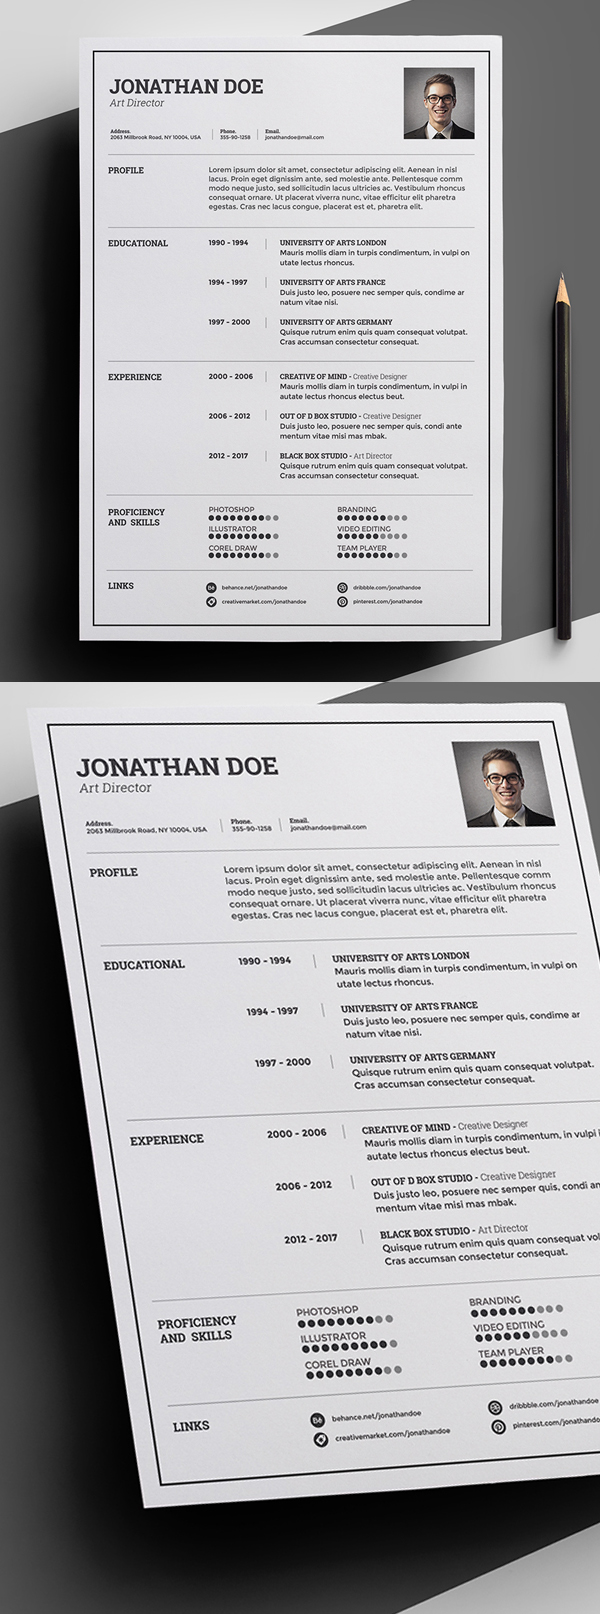 50 Free Resume Templates: Best Of 2018 -  12